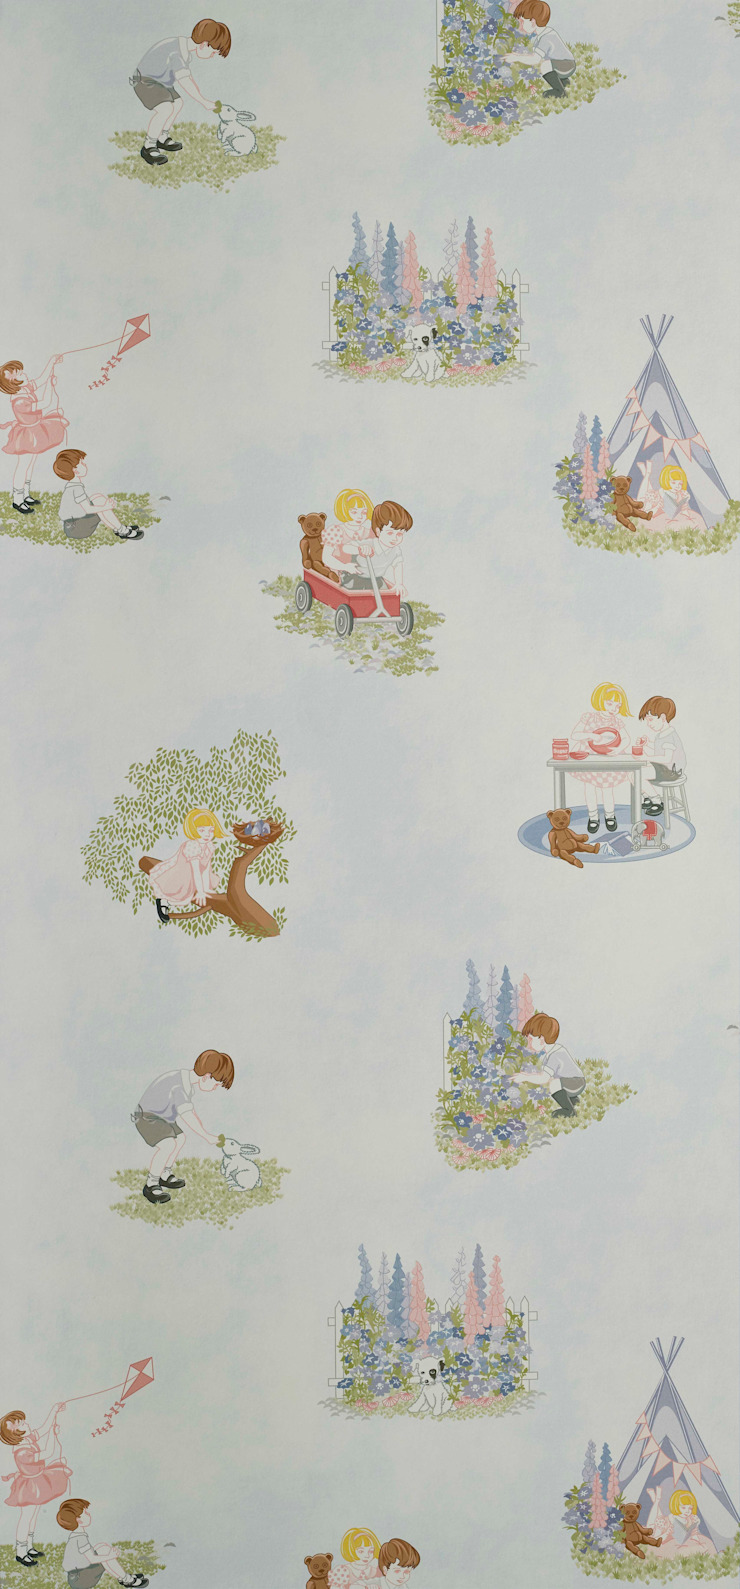 PLAYTIME Wallpaper 10m Ropll Hevensent 家居用品配件與裝飾品